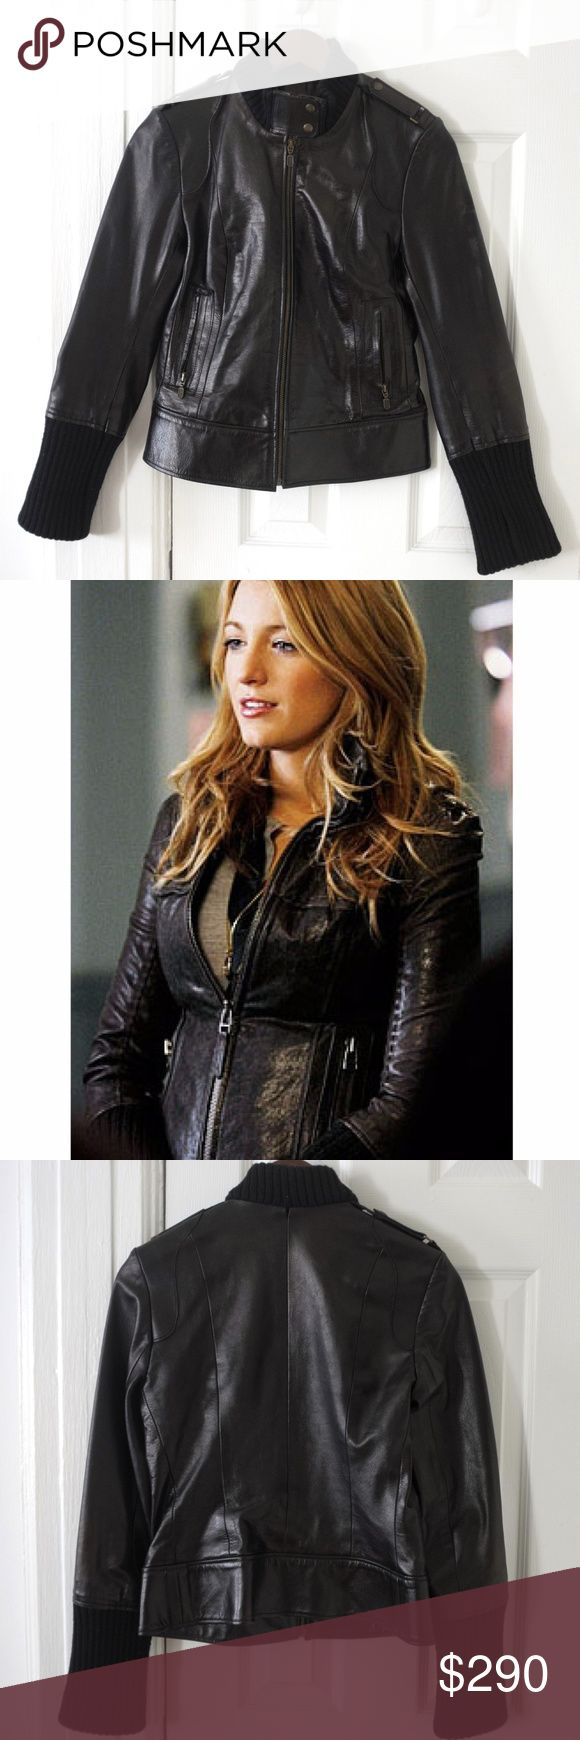 Mackage fitted leather jacket Fitted leather jacket form French brand Mackage as seen on Blake Lively.   Soft lambskin lined with silk, finished with elastic style collar and convertible sleeves.   The quality and workmanship is just beautiful, feels light, but warm and breathable.  It can take you from spring to winter and fall again in style.   Worn a few times, in fantastic condition.   Measurements lying flat: Shoulders 39.5cm / 15.5in Length 53cm / 20.8in Sleeve 62cm / 24.4in Chest 42cm…